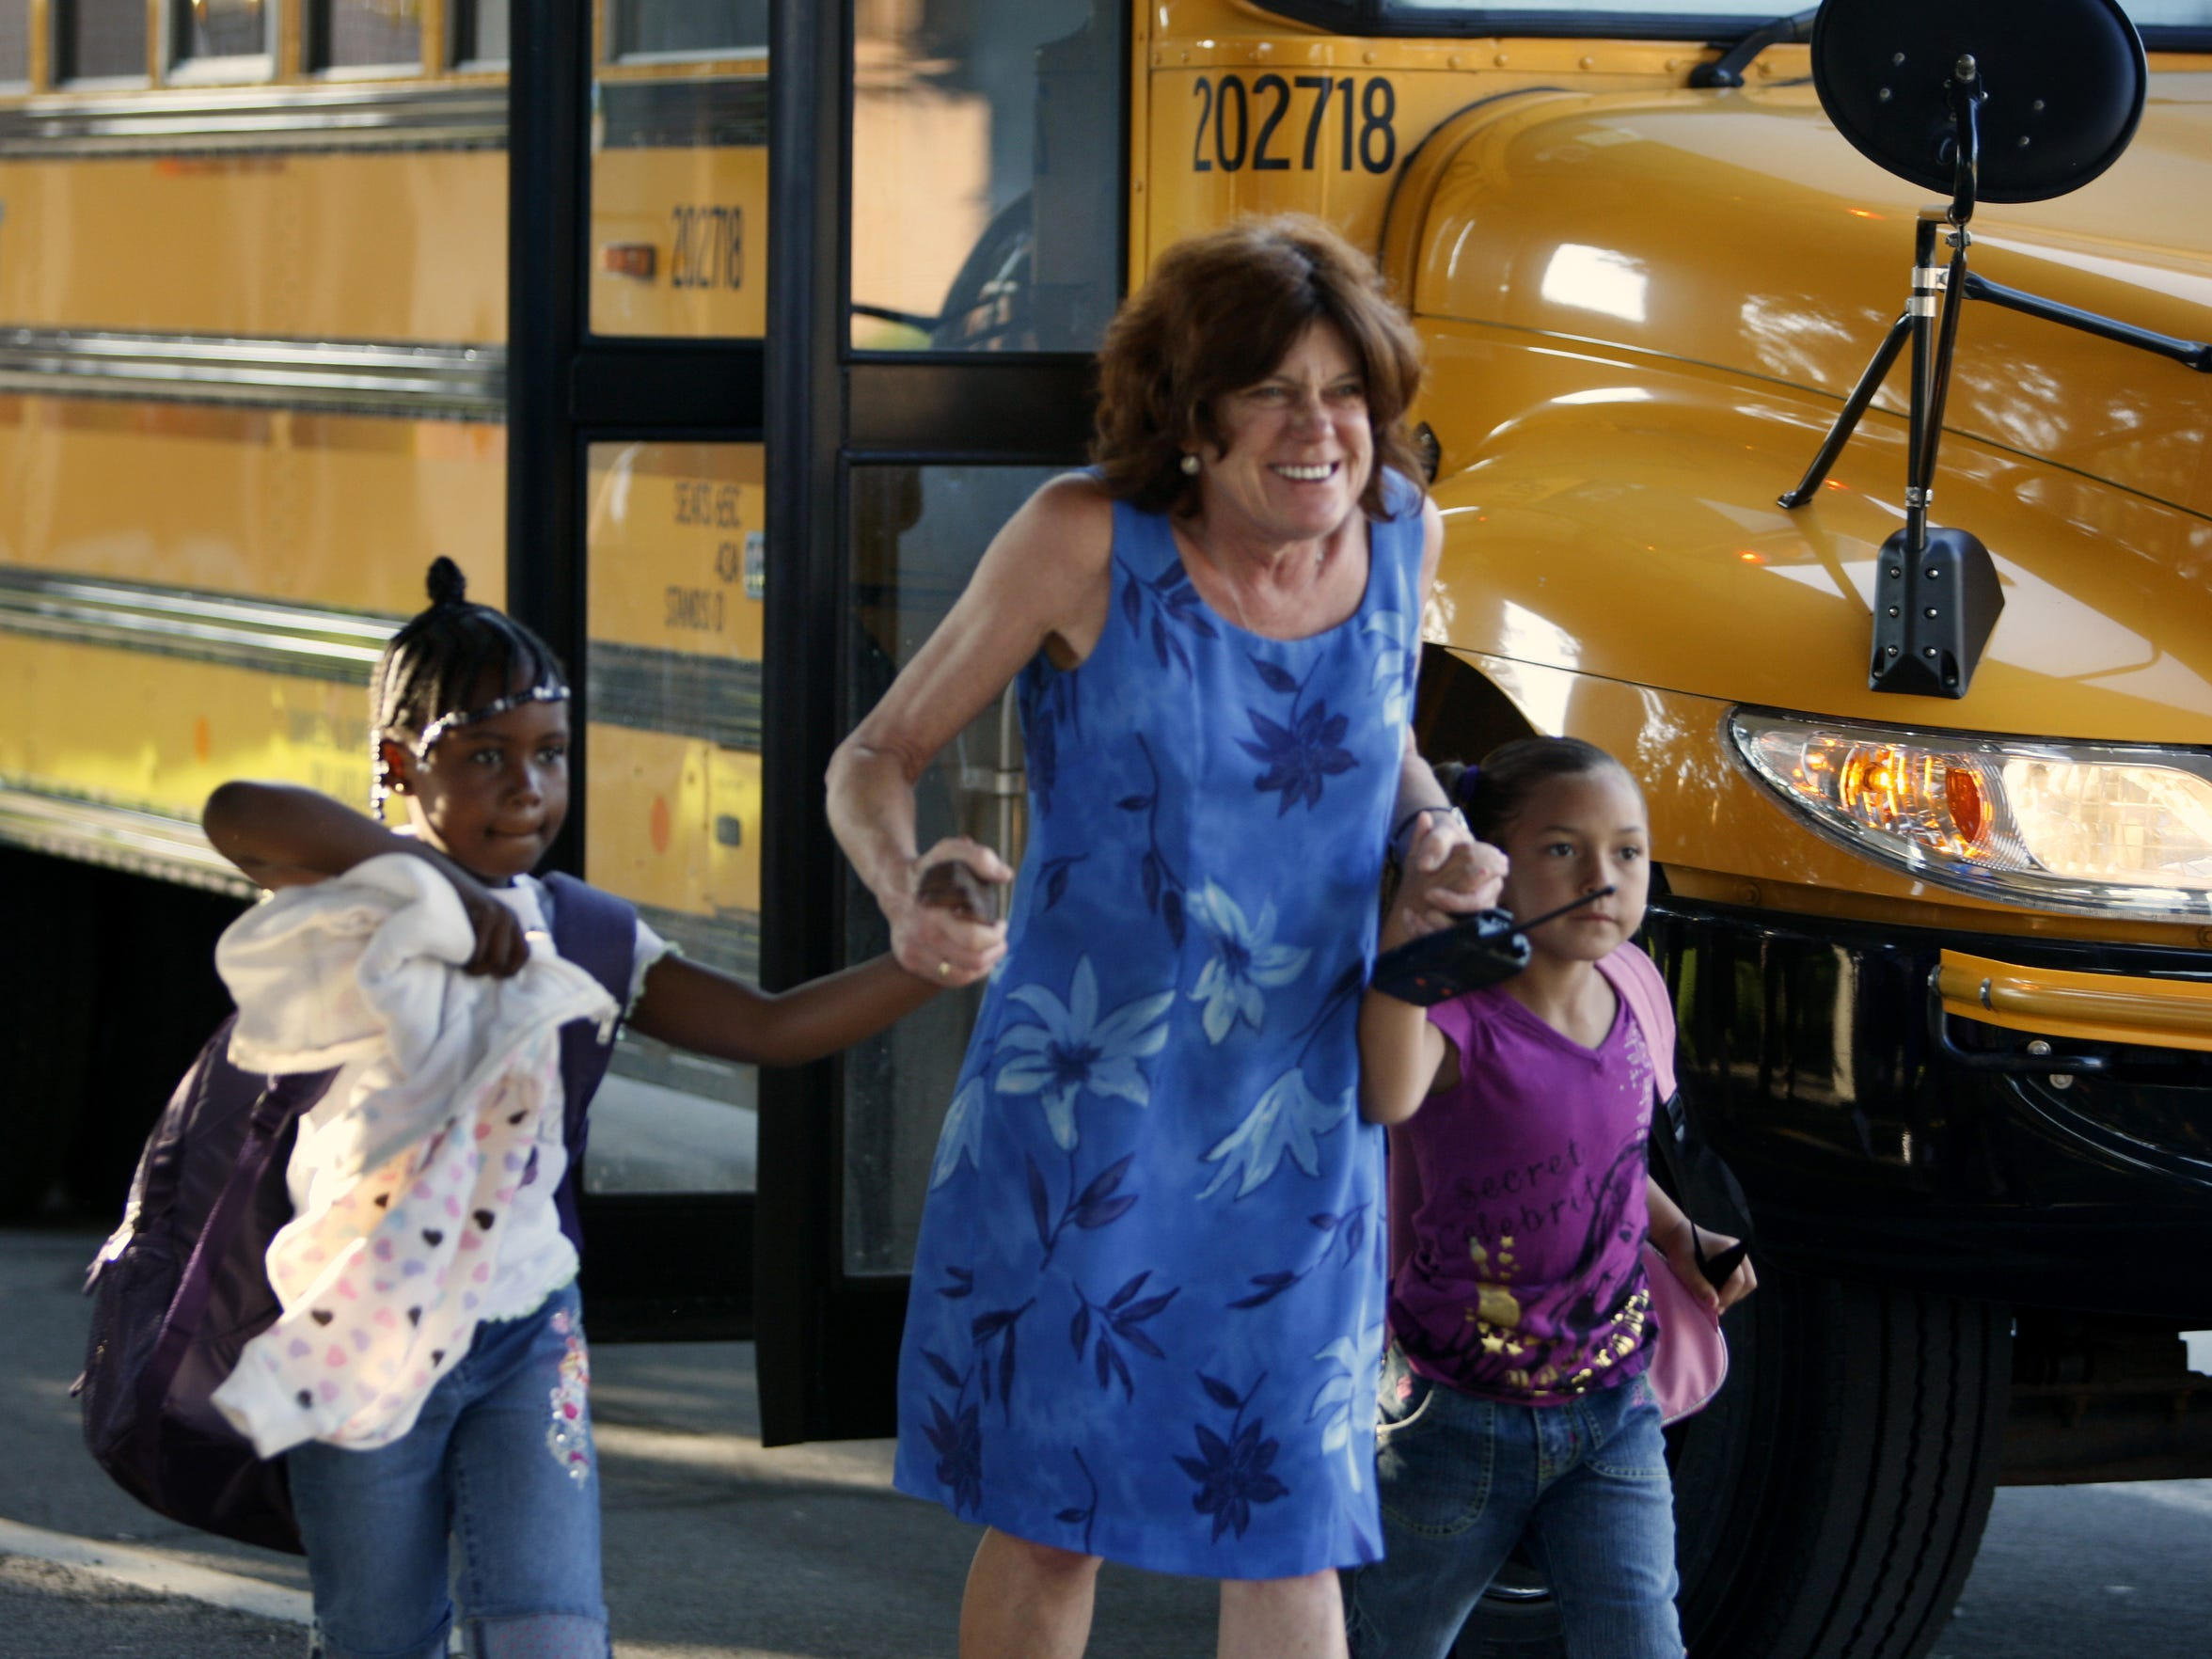 Five new school districts joined the Urban-Suburban